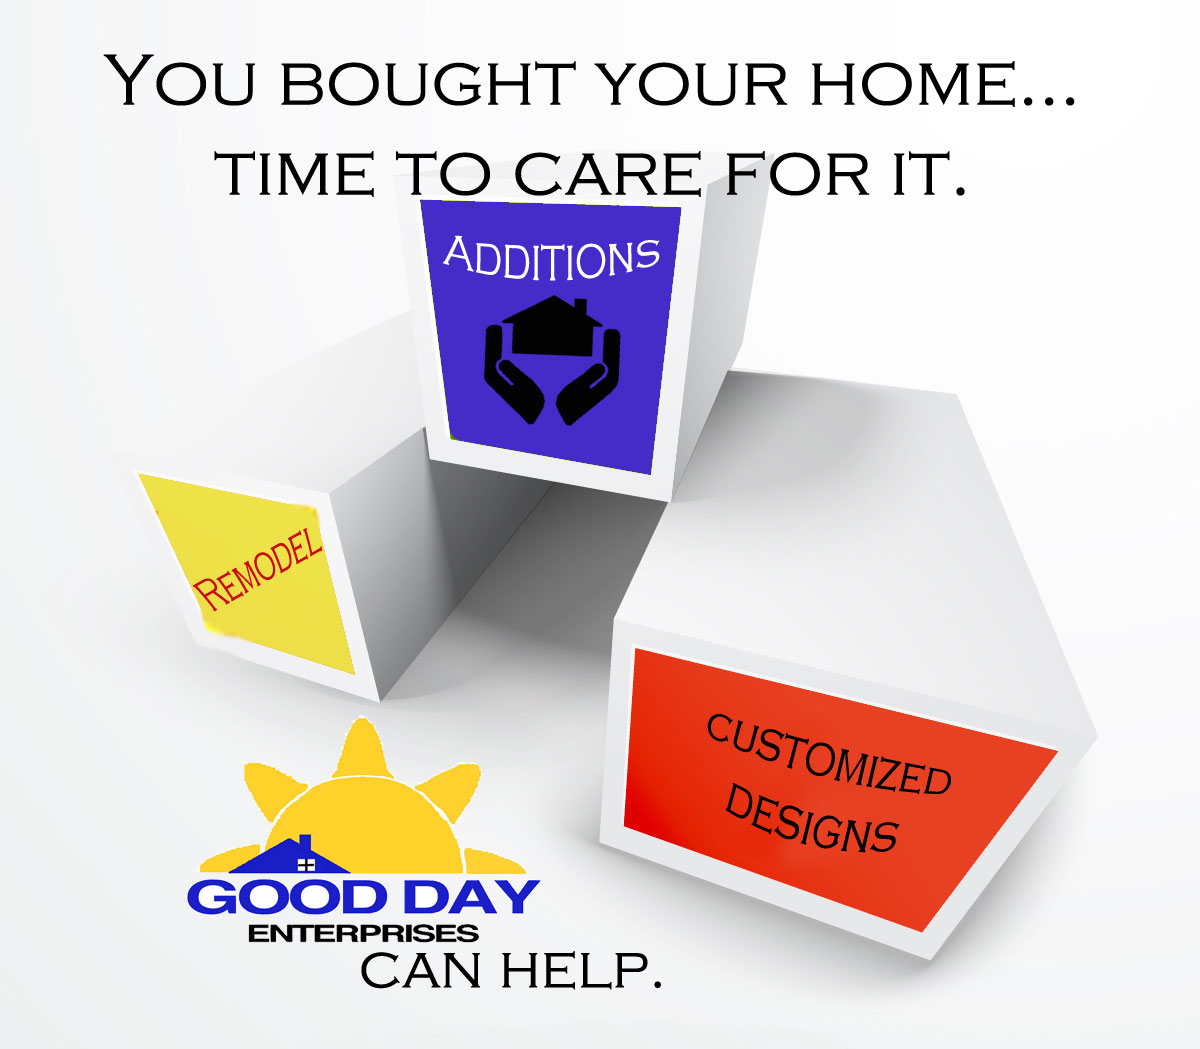 You bought your home. Time to care for it.